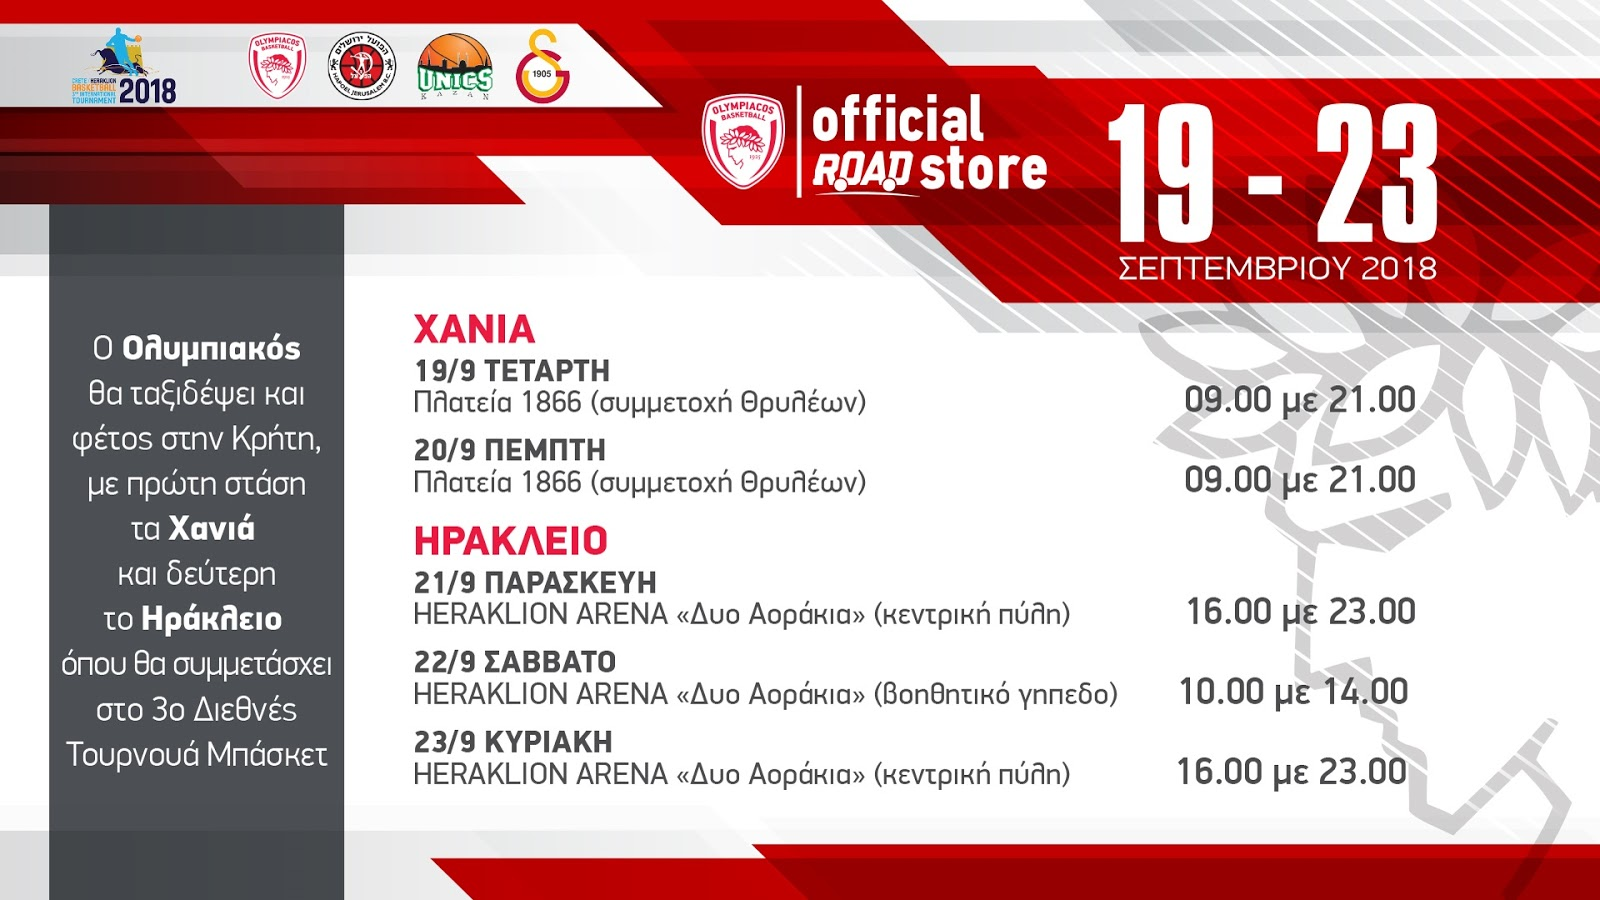 dc87aa798e Olympiacos BC Road Store  To ταξίδι ξεκινά! - Moschatotavros Sporty